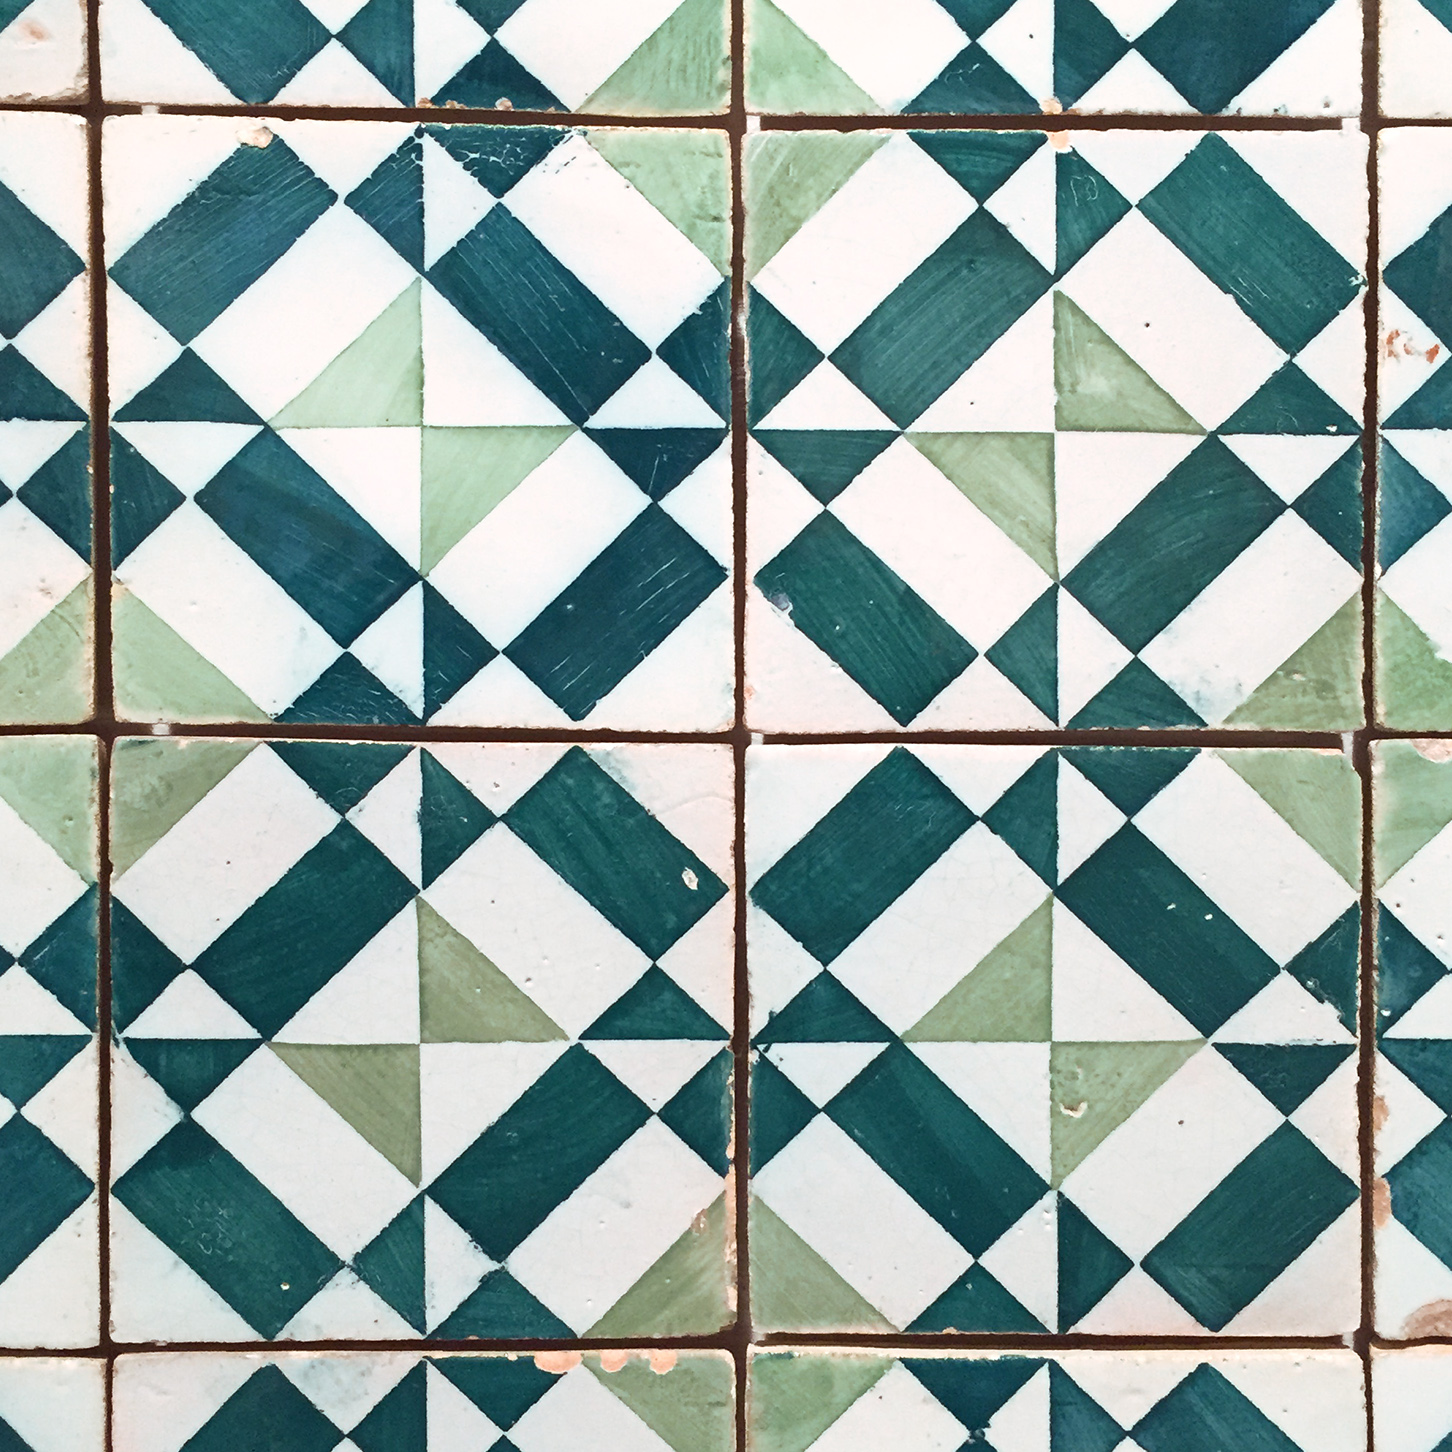 Green Geometric Tile.jpg